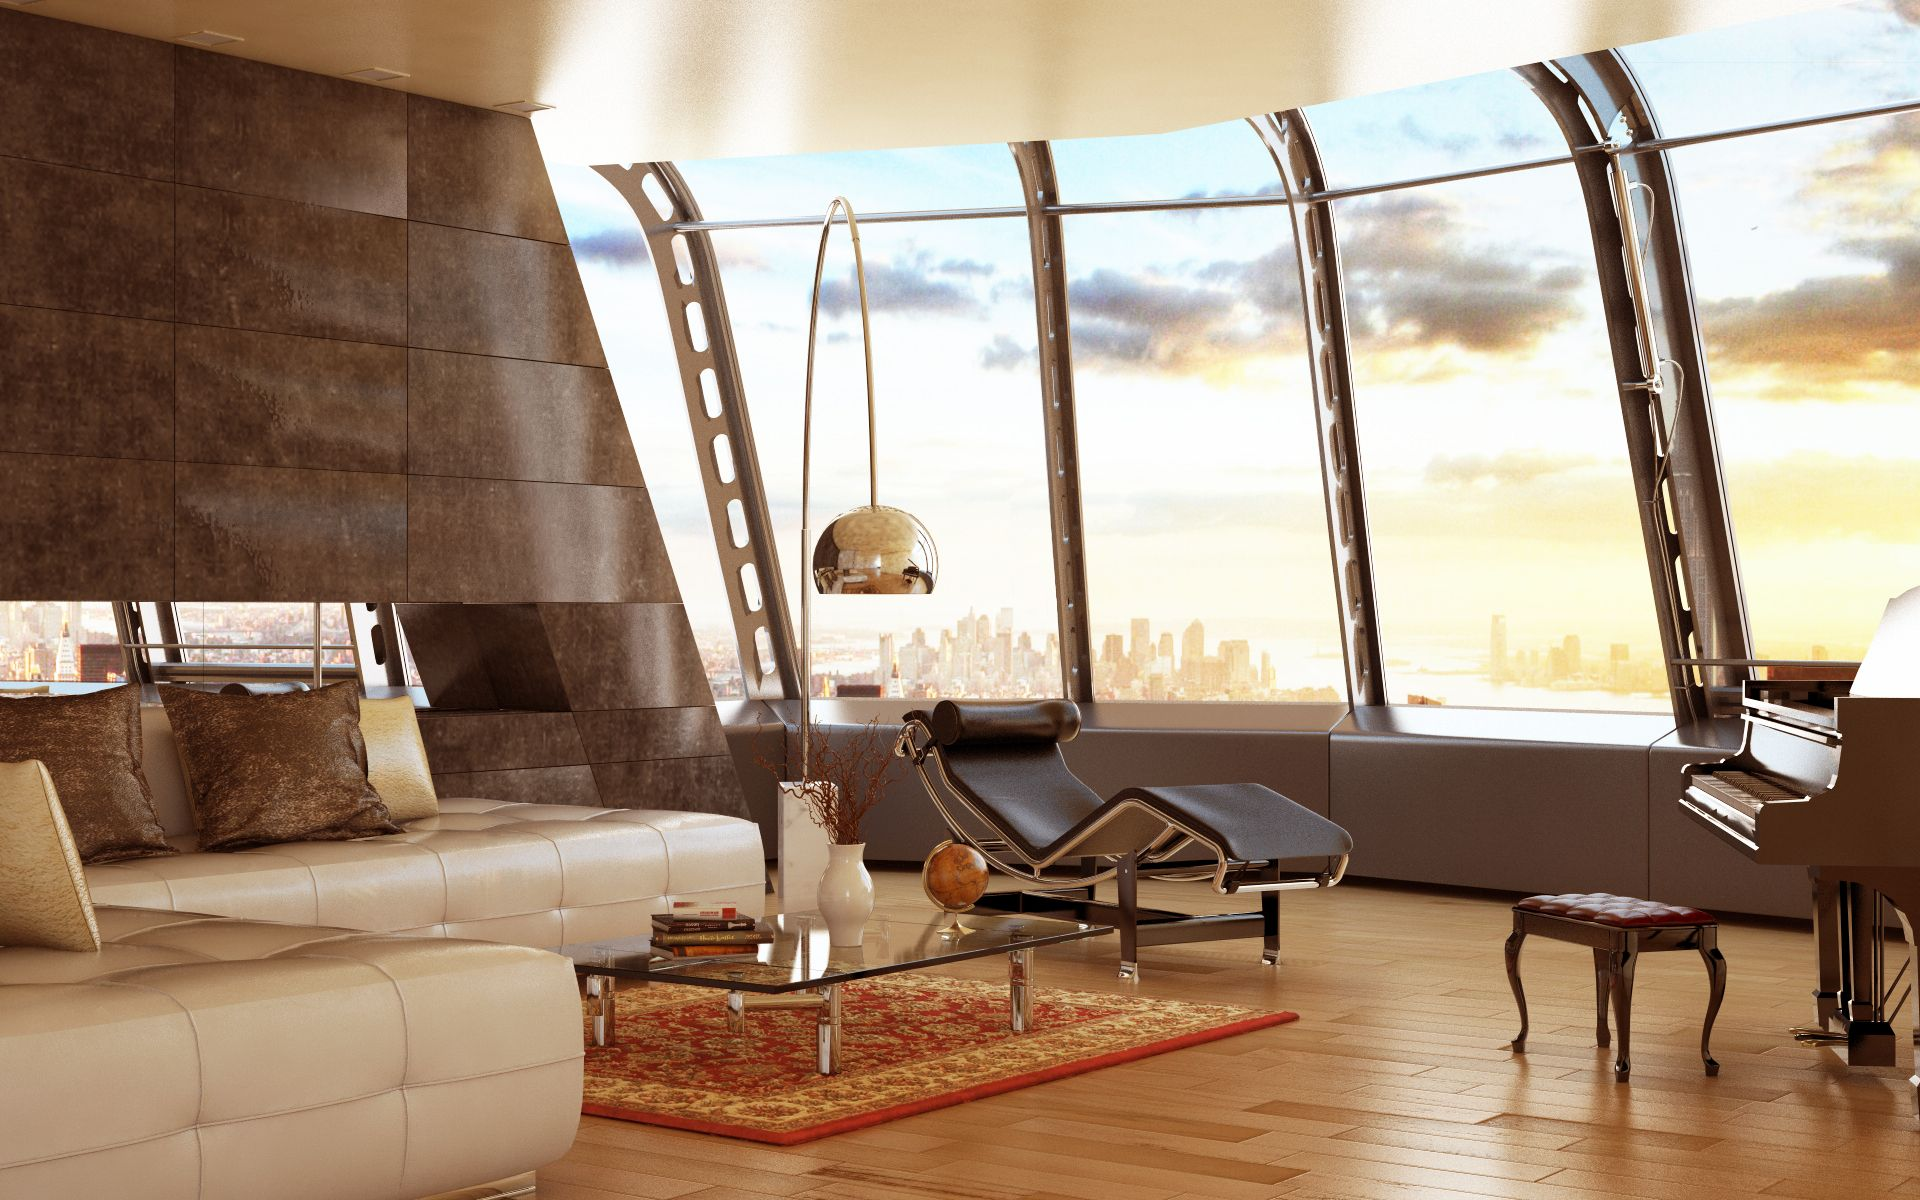 Loft on a skyscraper. sunset interior rendering made by cinema 4d